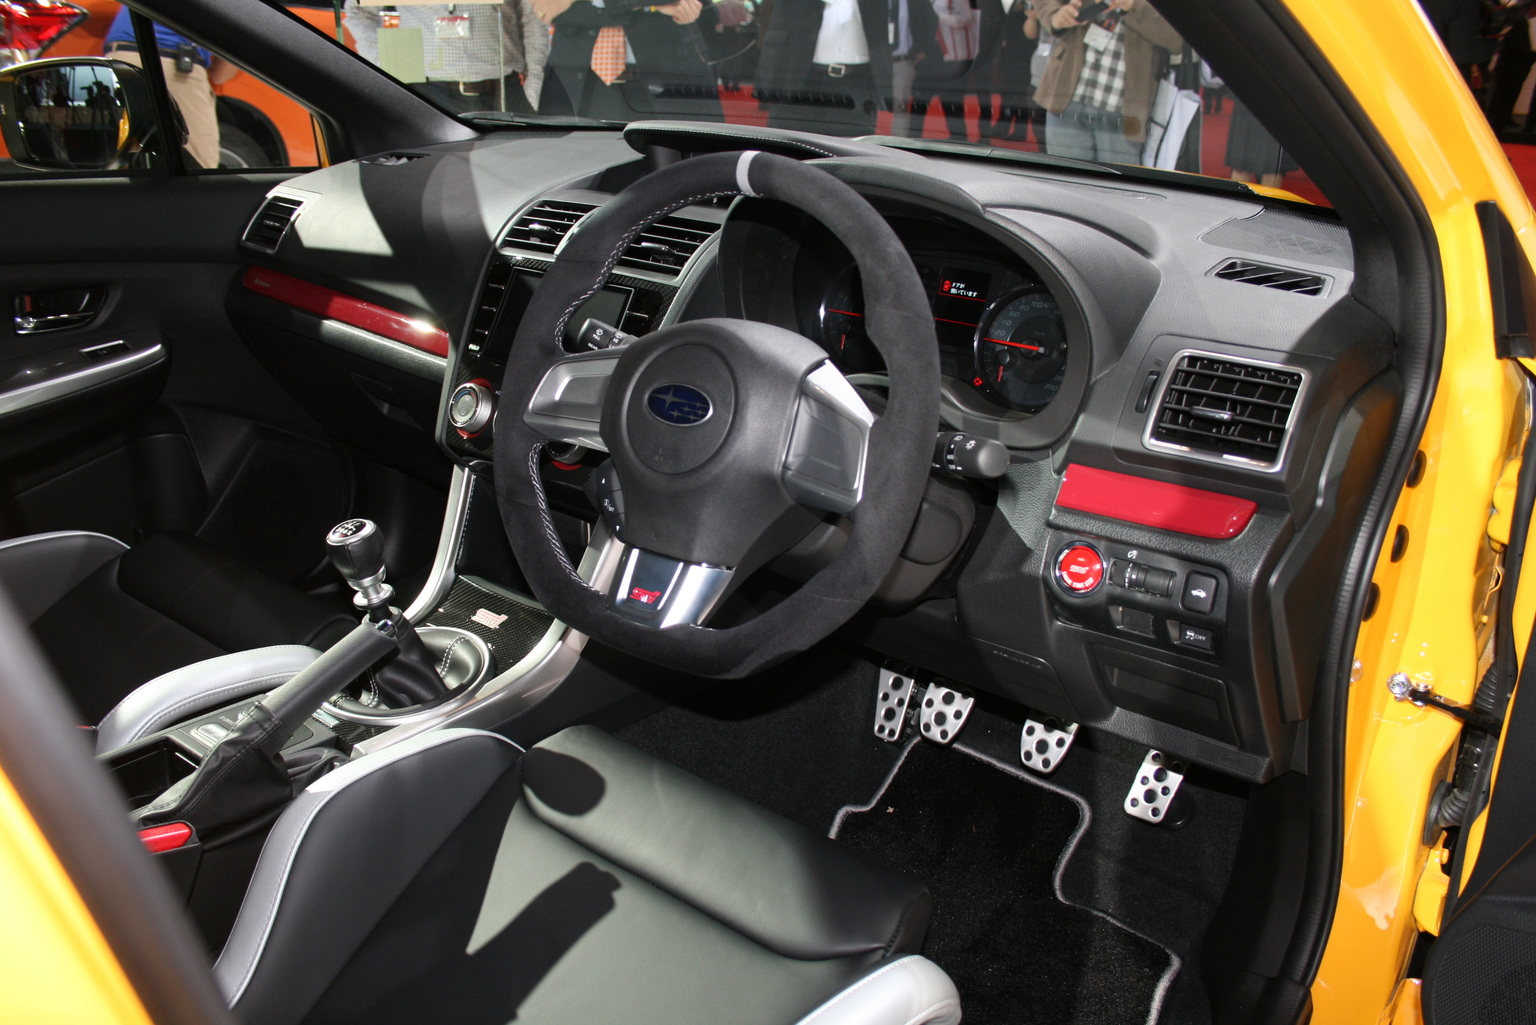 2016 subaru impreza wrx sti s207. Black Bedroom Furniture Sets. Home Design Ideas